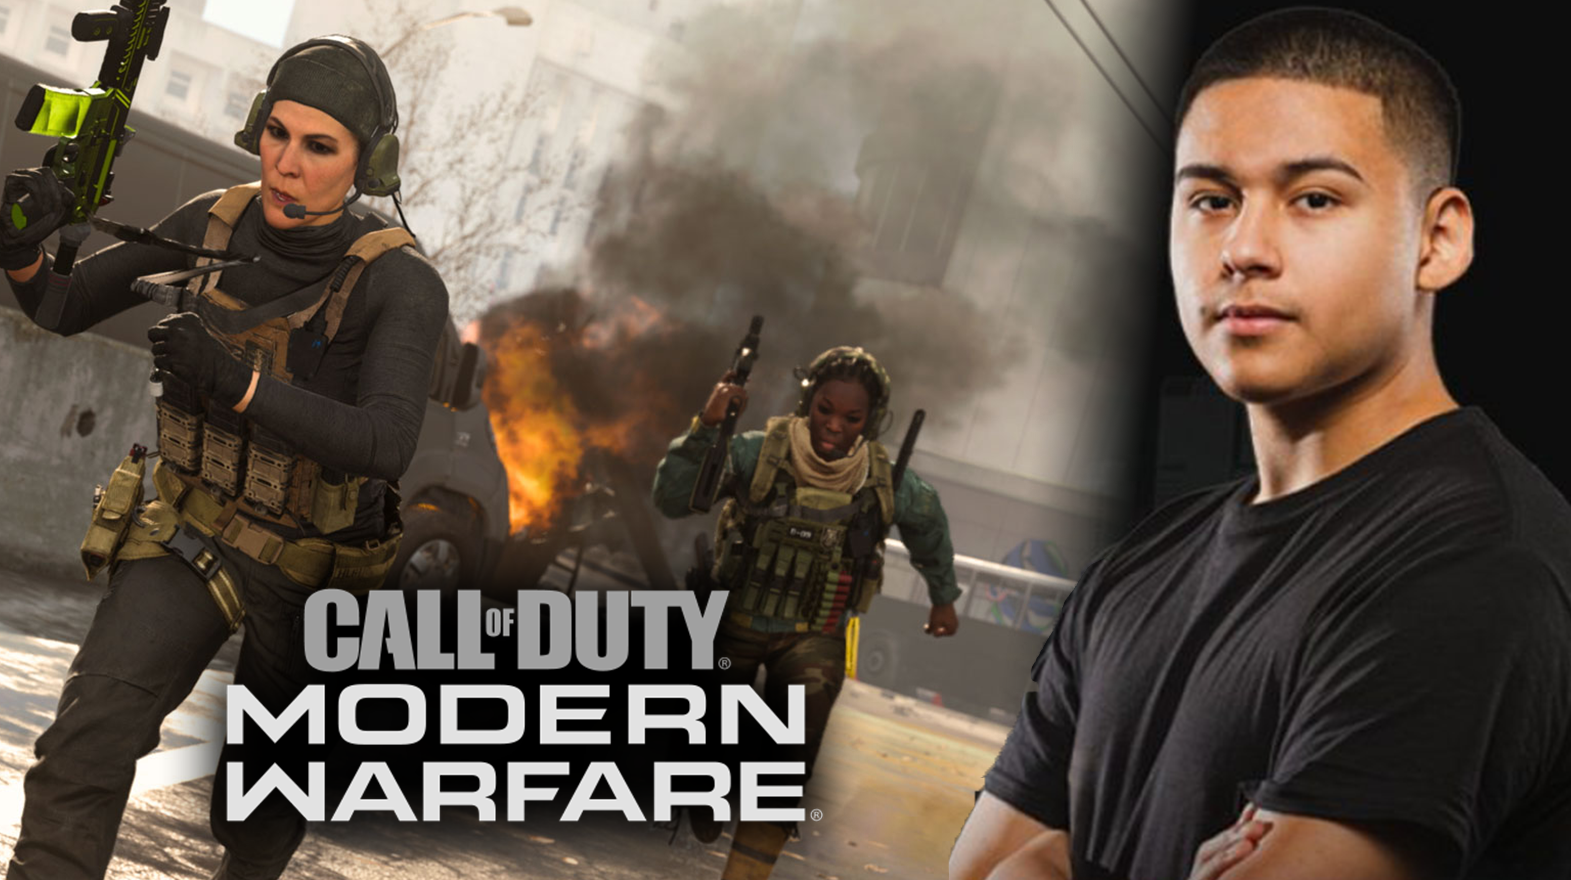 Call of Duty Modern Warfare gameplay / CDL pro Shotzzy profile picture